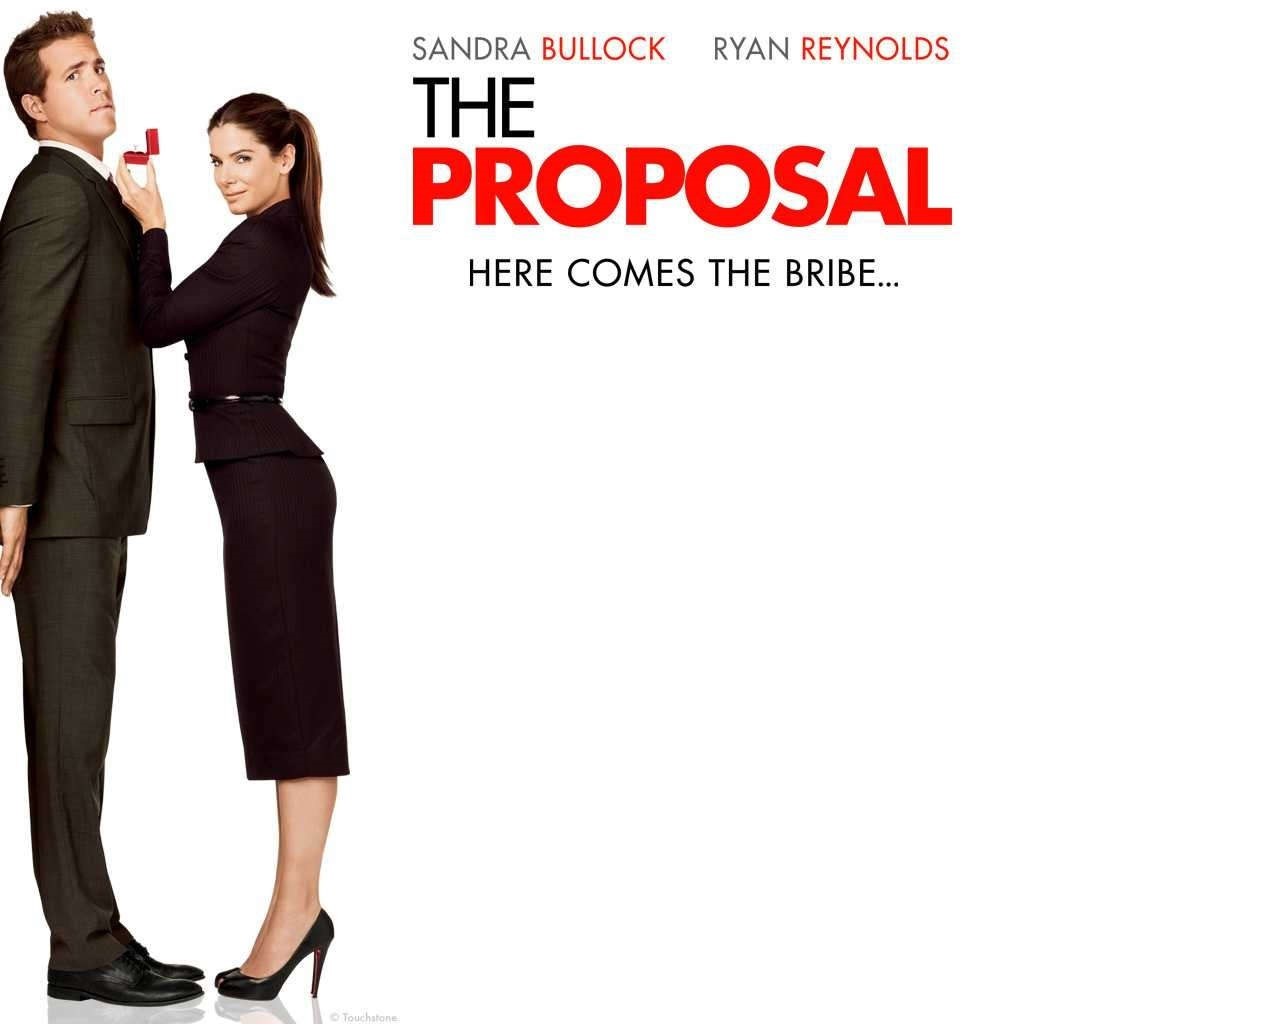 Ricatto d'Amore - The Proposal - Sandra Bullock Ryan Reynolds